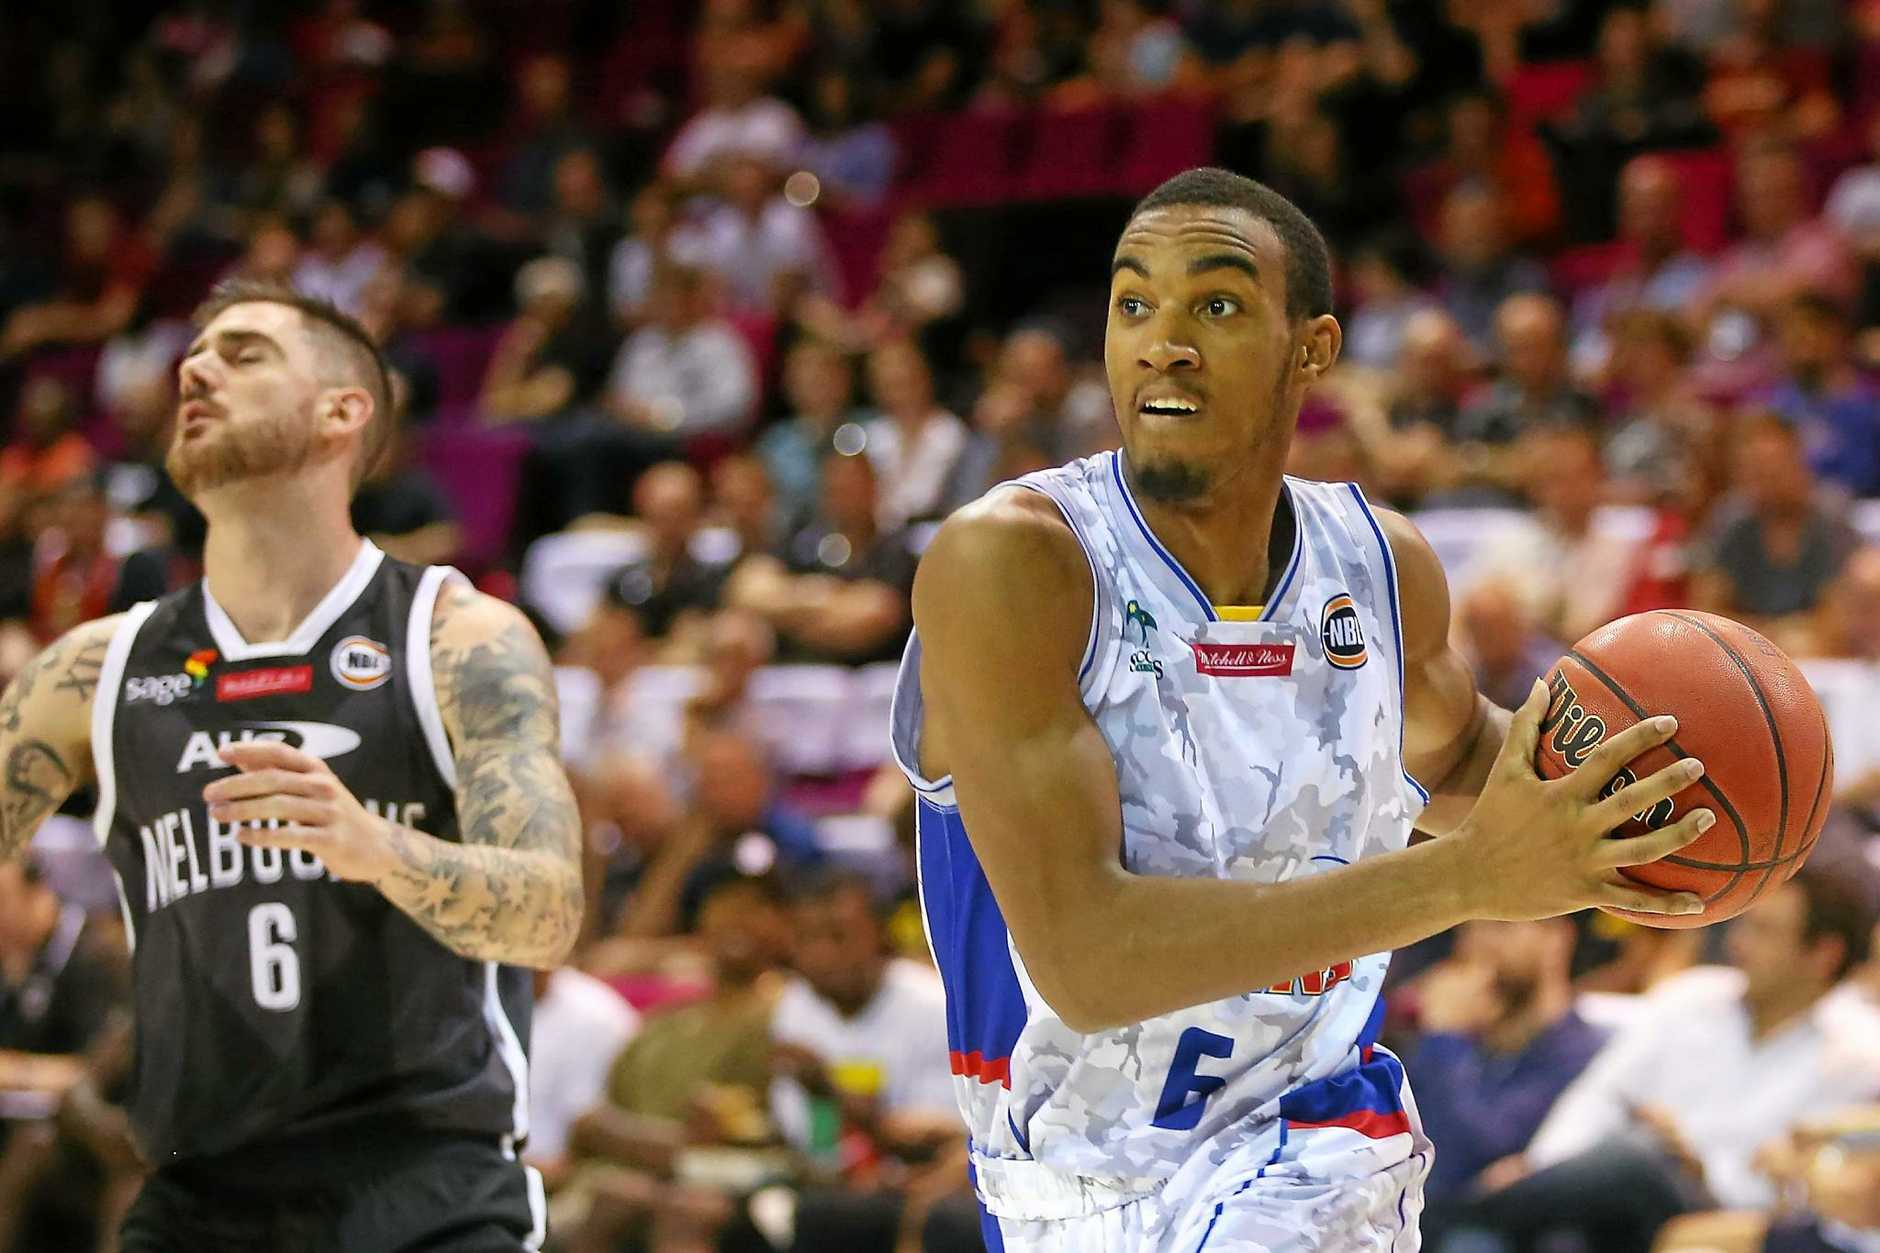 Terrance Ferguson of the Adelaide 36ers drives to the basket.